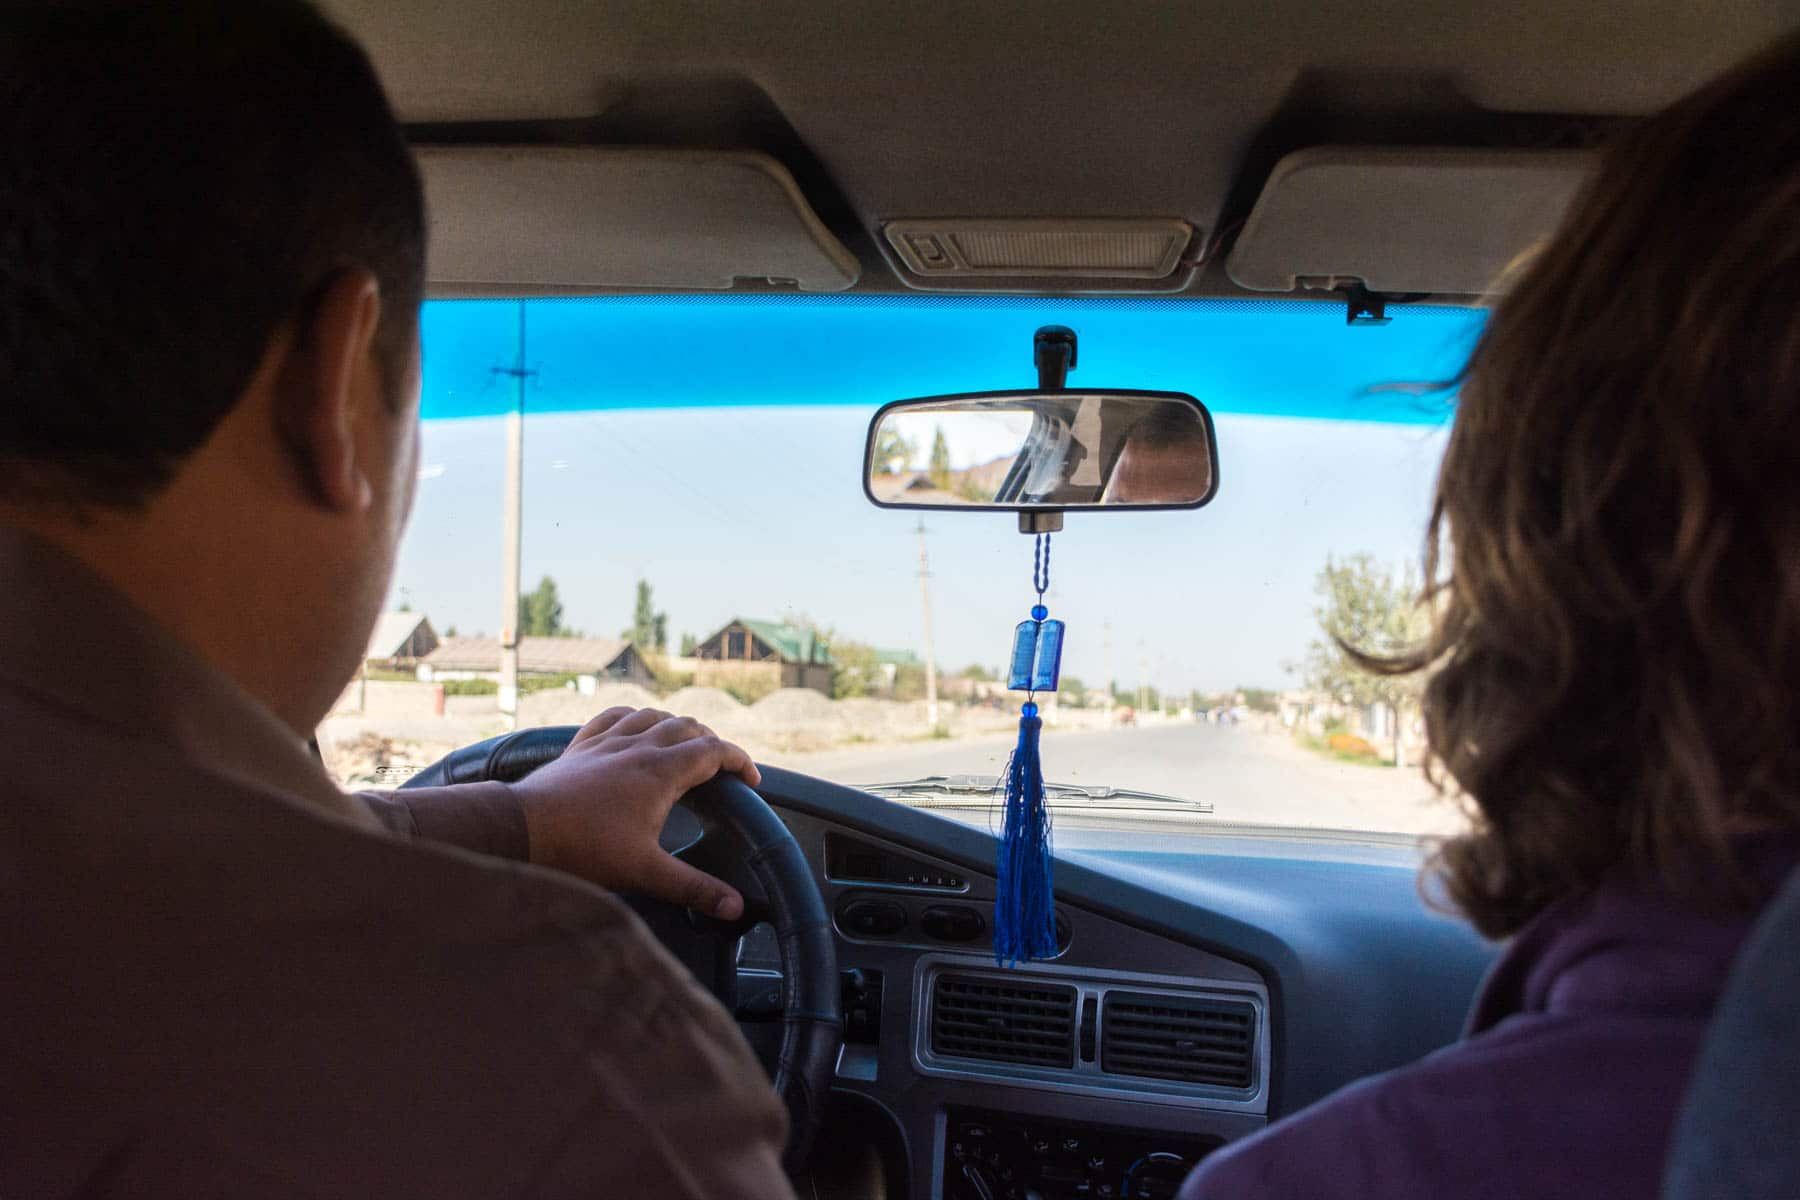 Two week Uzbekistan itinerary - A taxi from the Kyrgyzstan - Uzbekistan border - Lost With Purpose